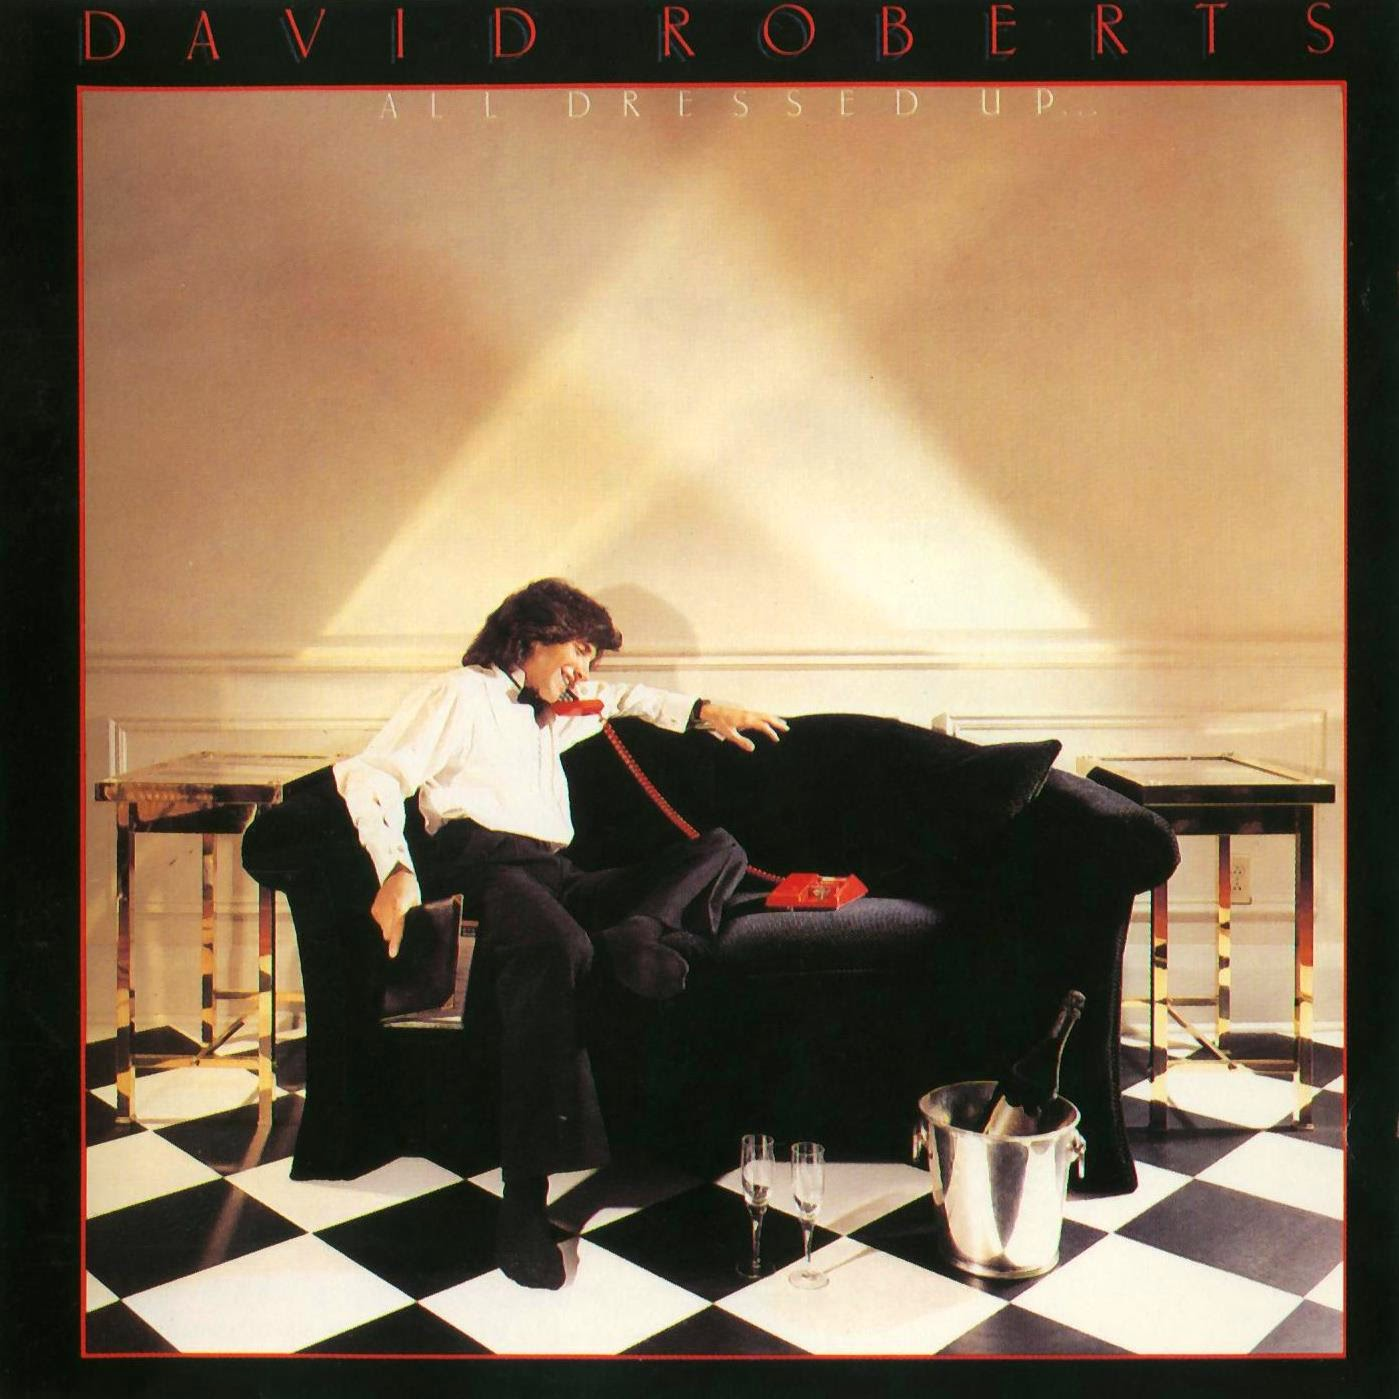 David Roberts All dressep up 1982 aor melodic rock